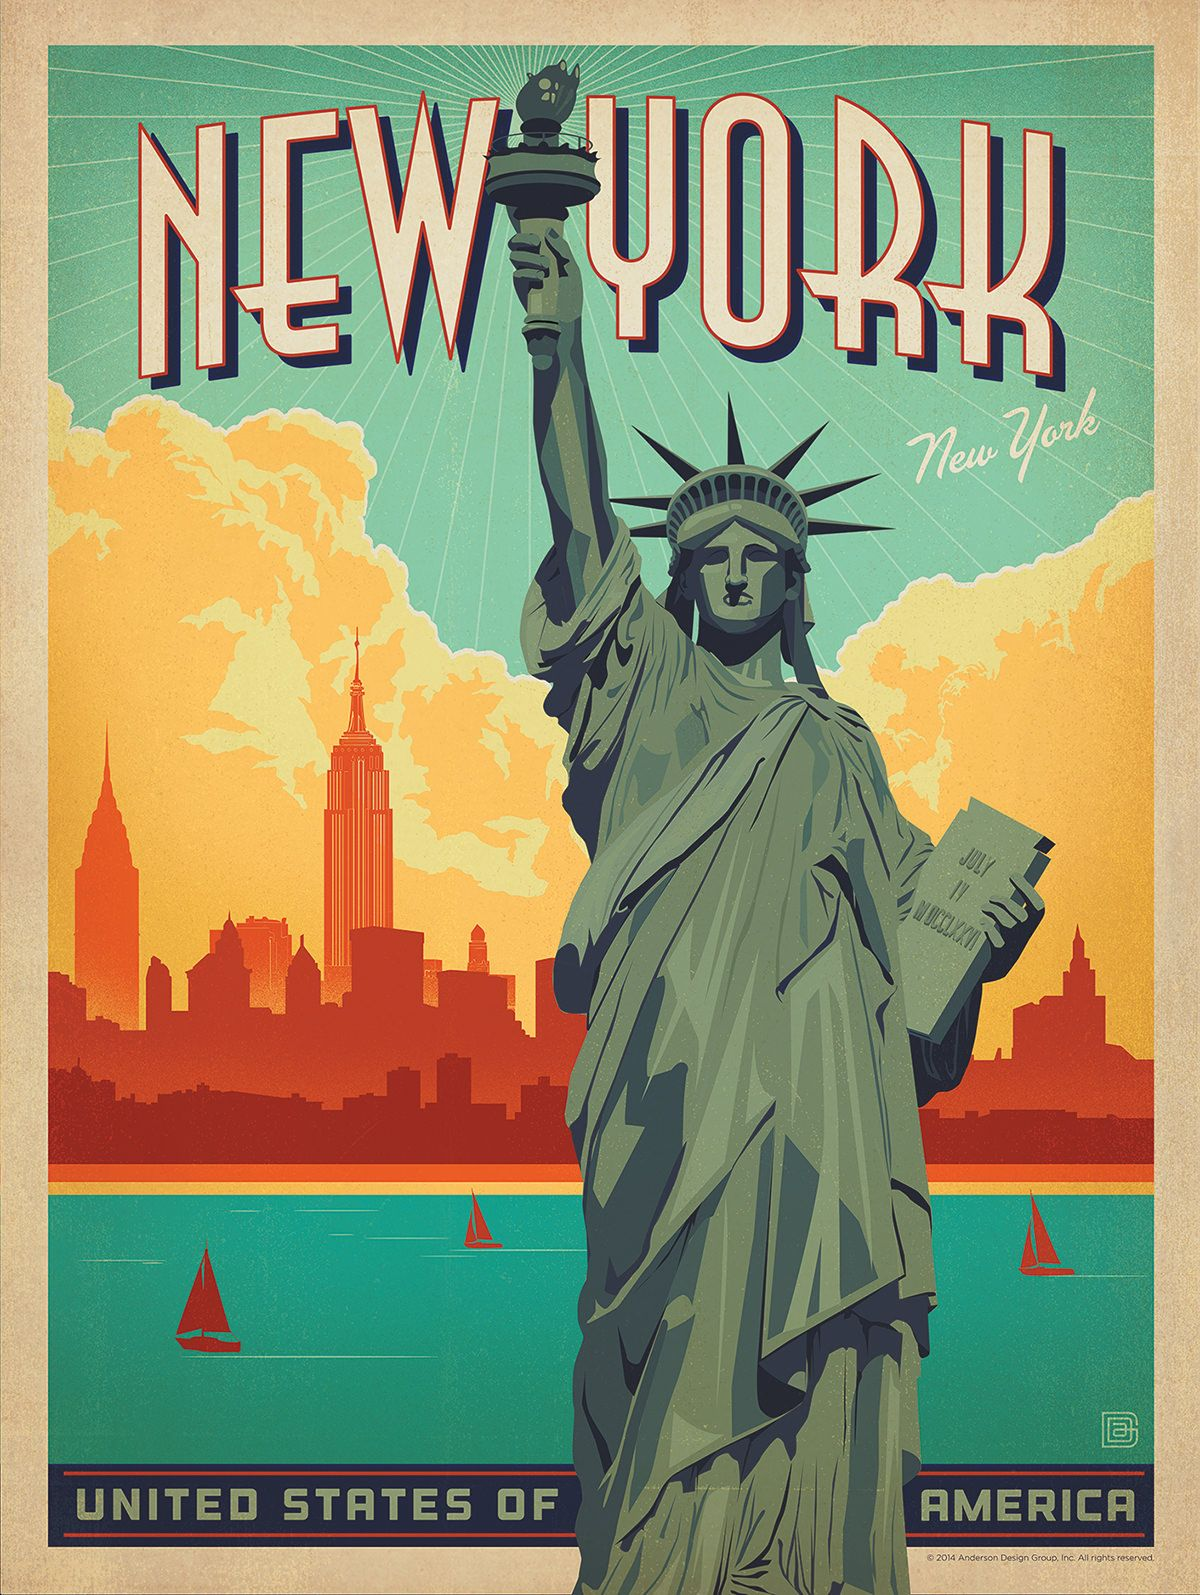 Poster Werbung New York Vintage Poster Google Search Reisen